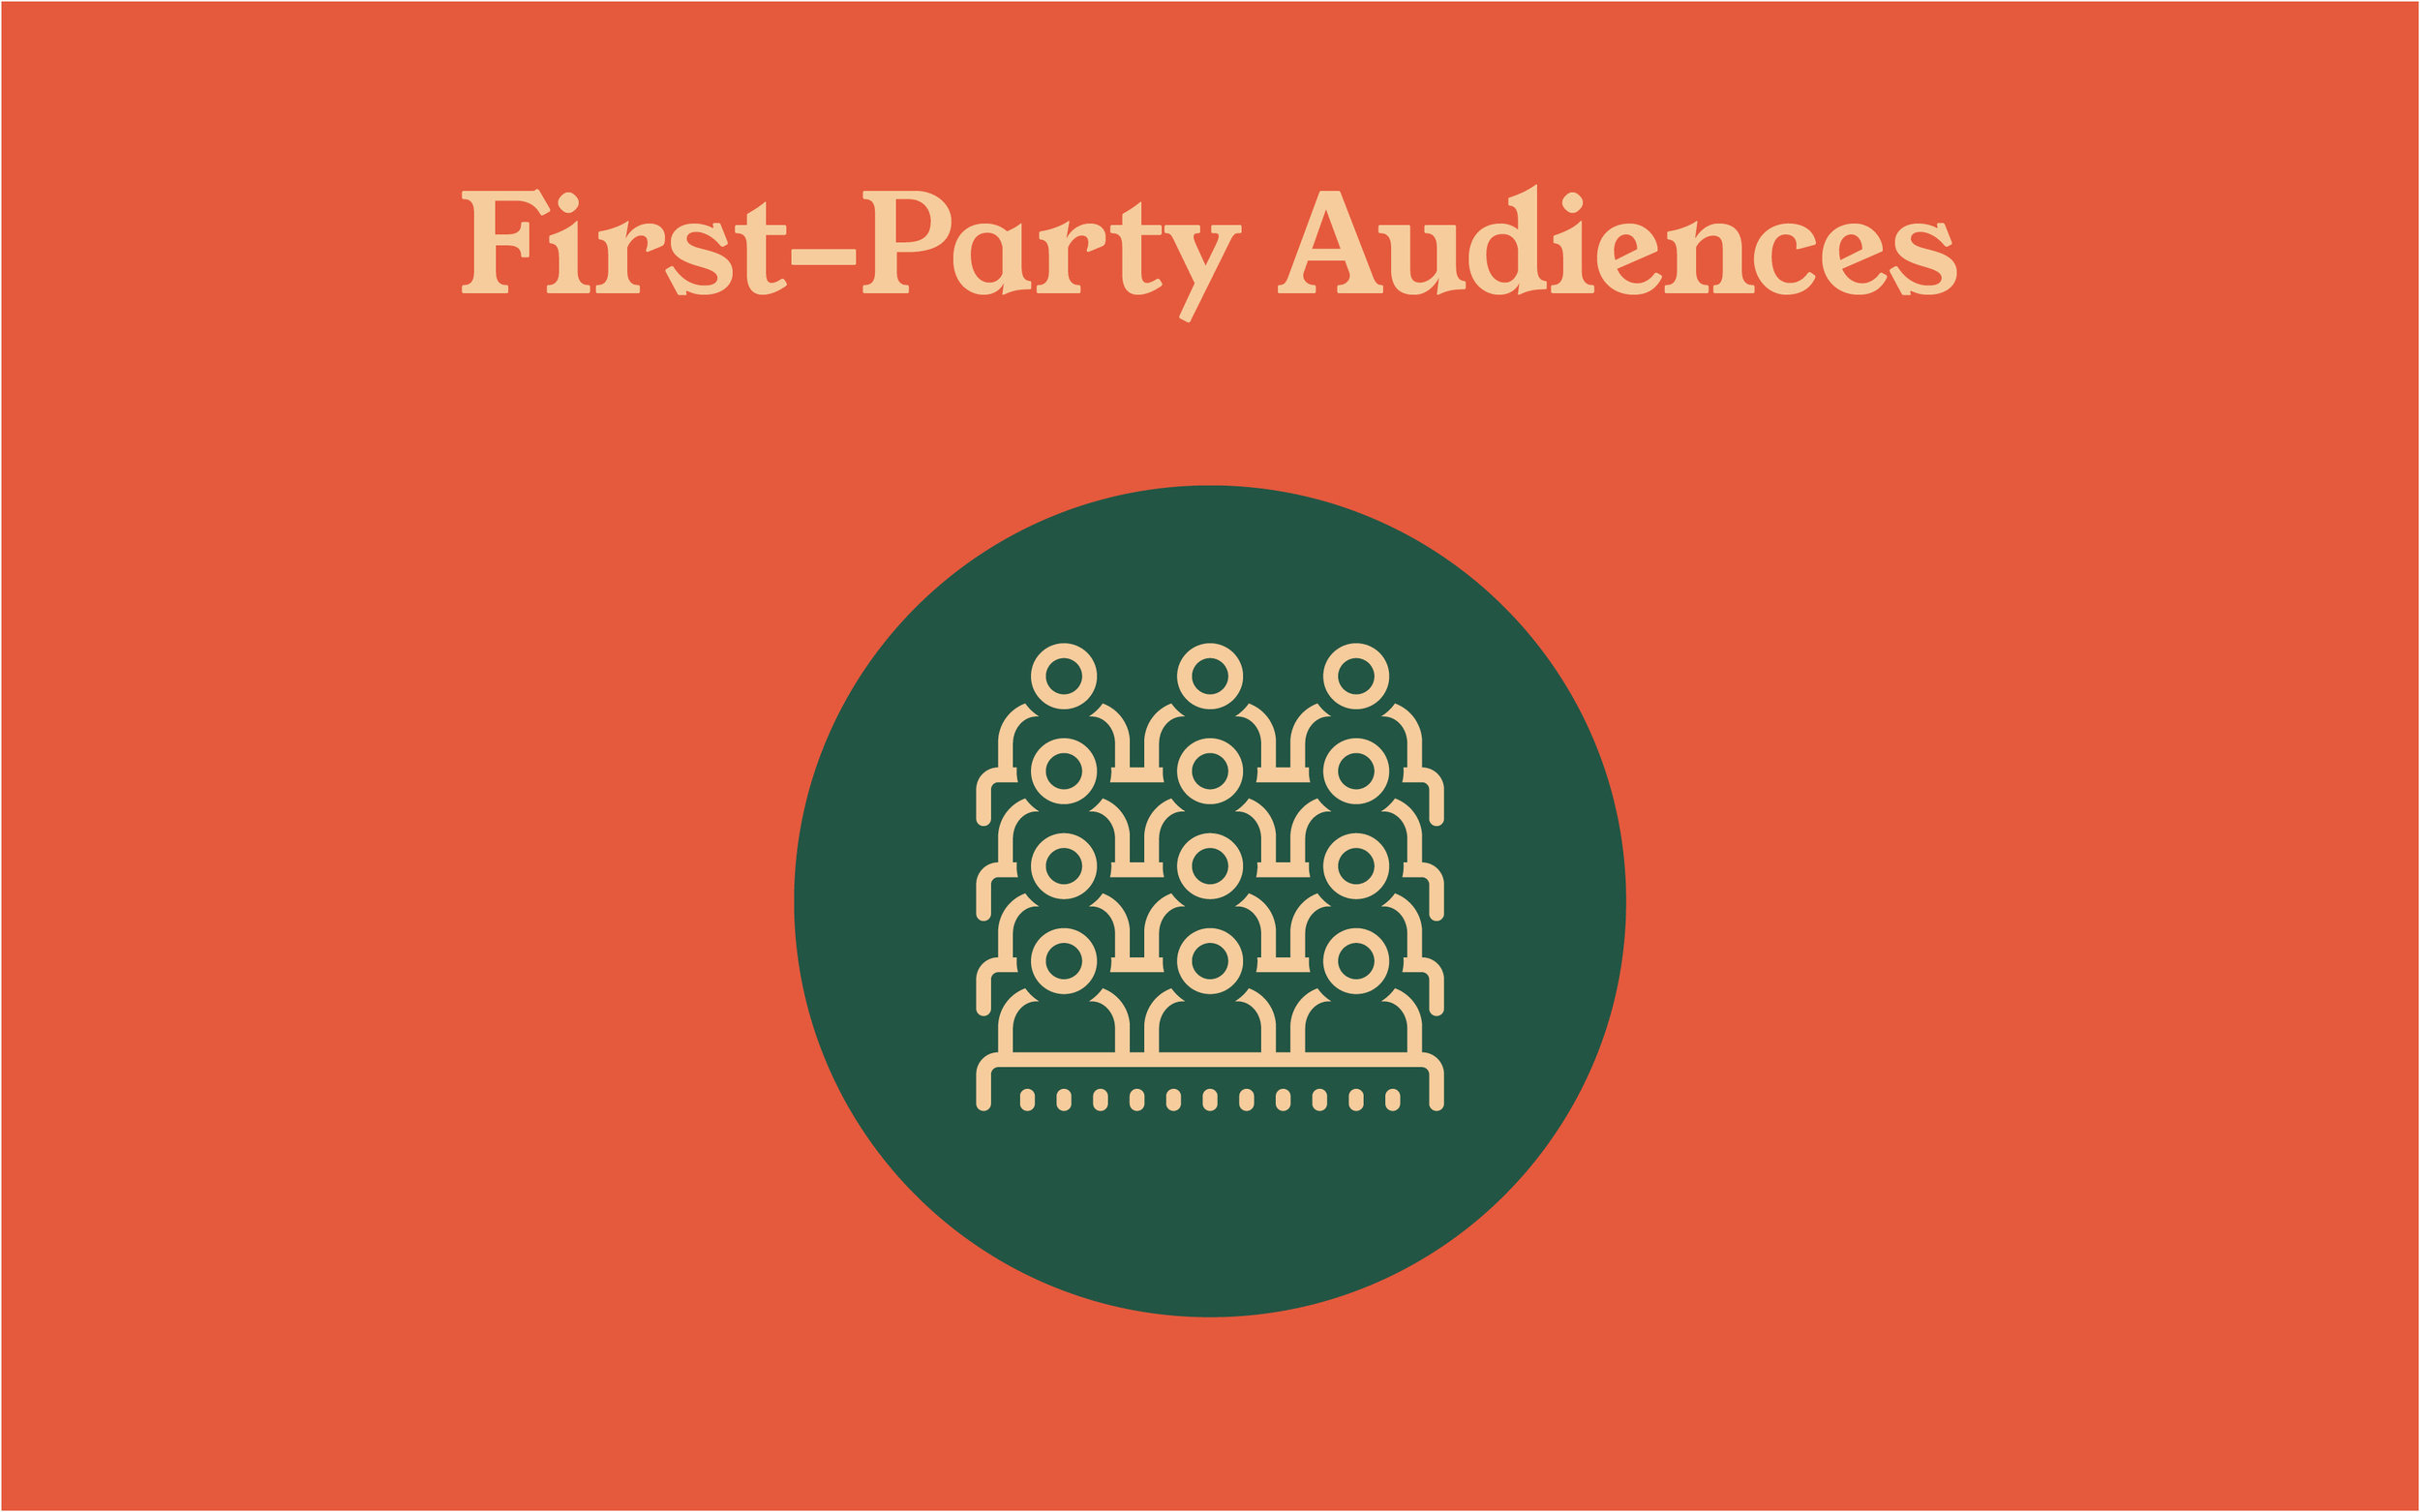 first party audience graphic.jpg